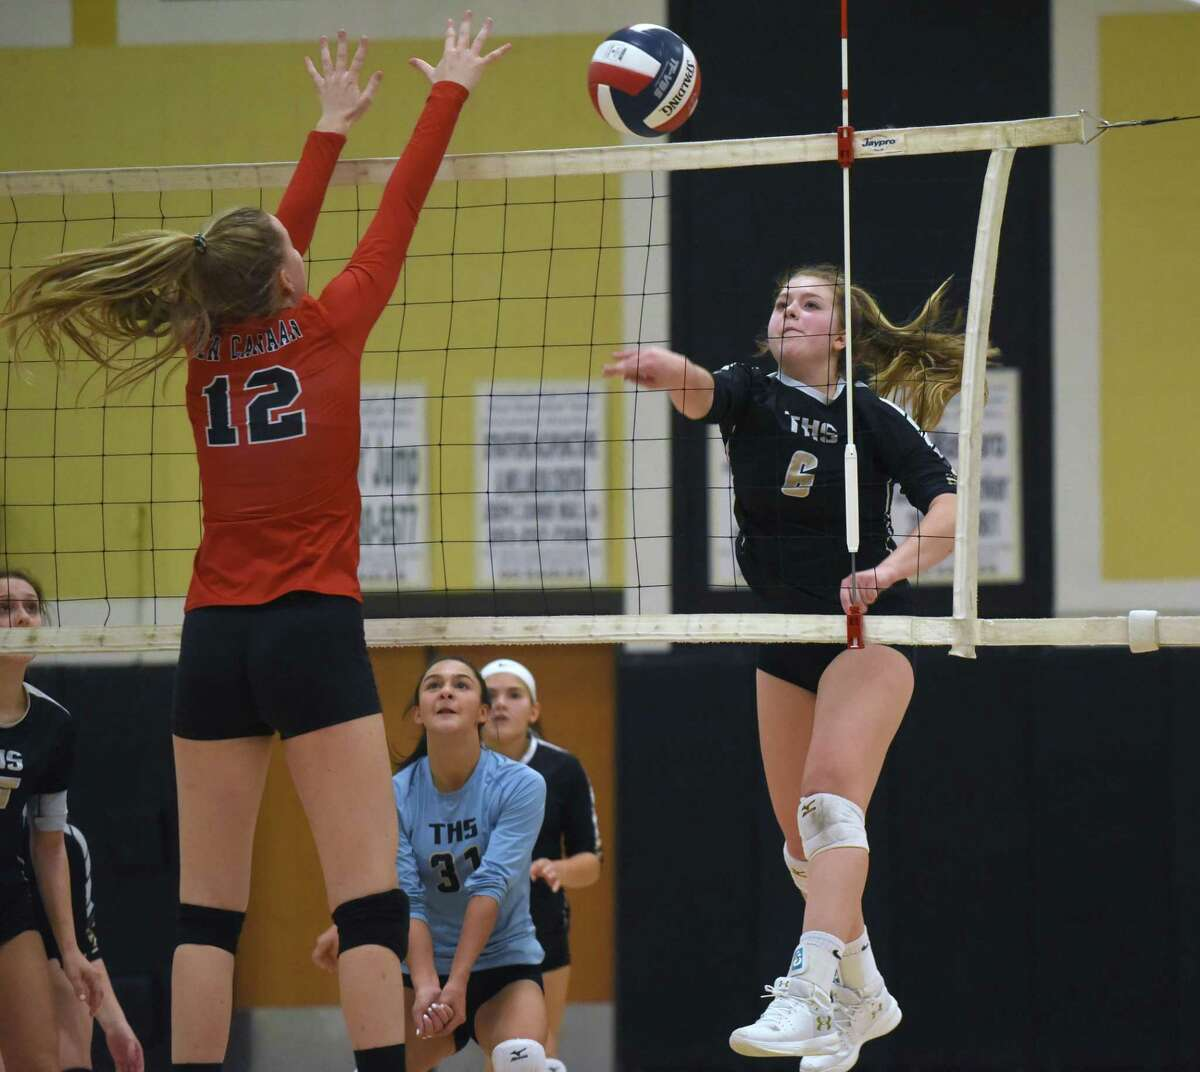 Trumbull's Bailey Cenatiempo (6) puts a shot past New Canaan's Lillie Gray during an FCIAC quarterfinal game at Trumbull in 2019.